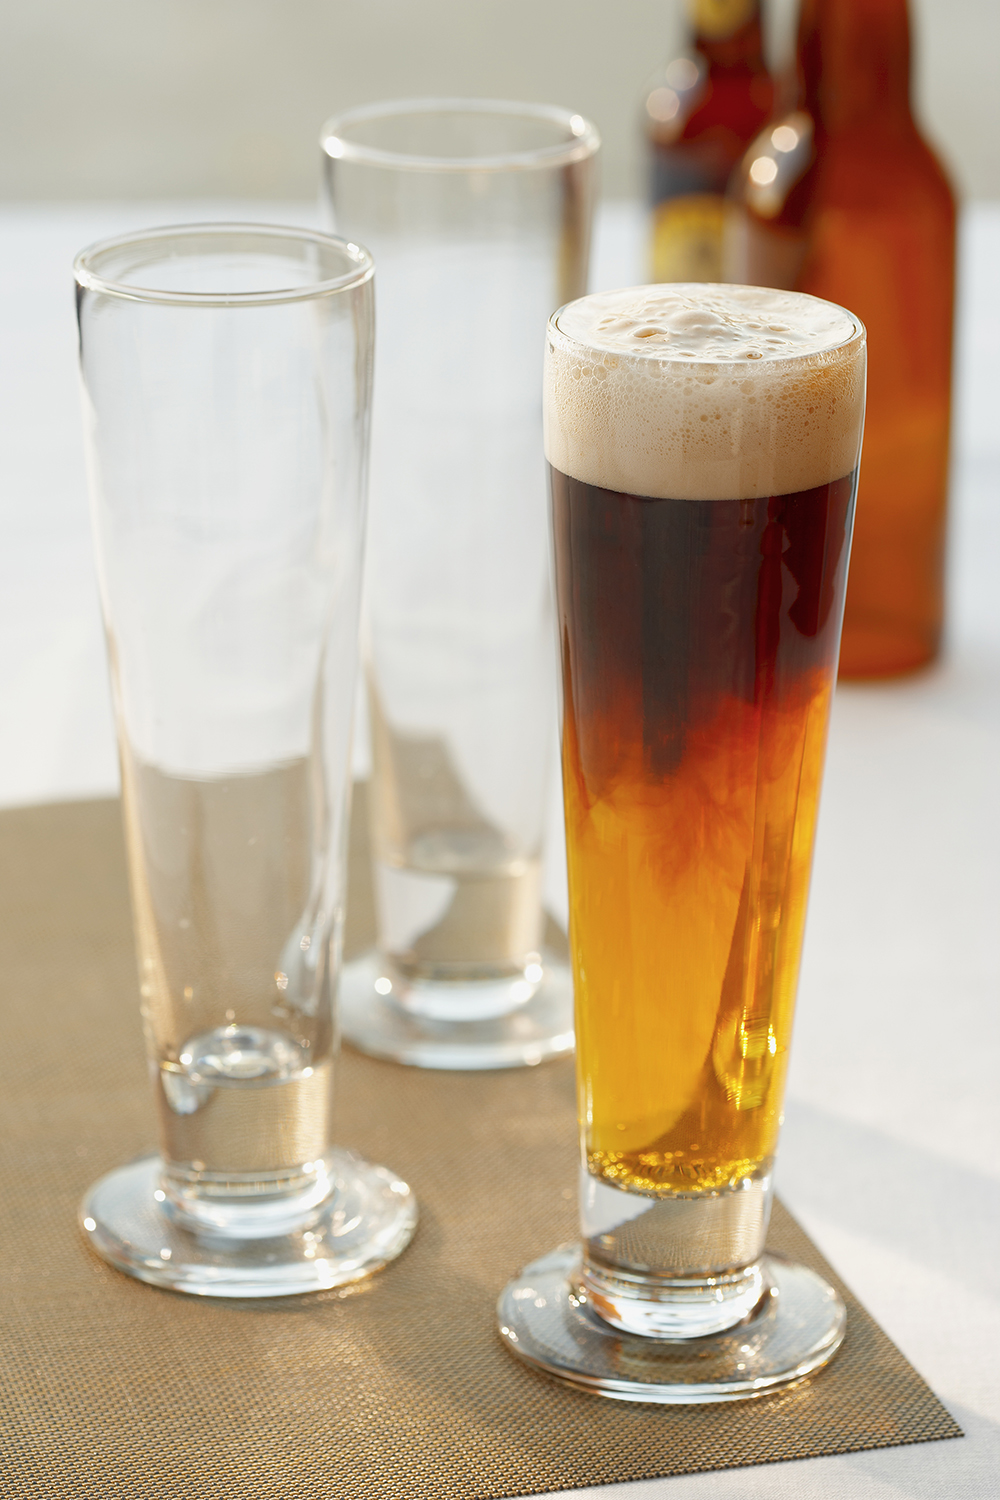 Super Simple Beer Cocktails to Make this Summer